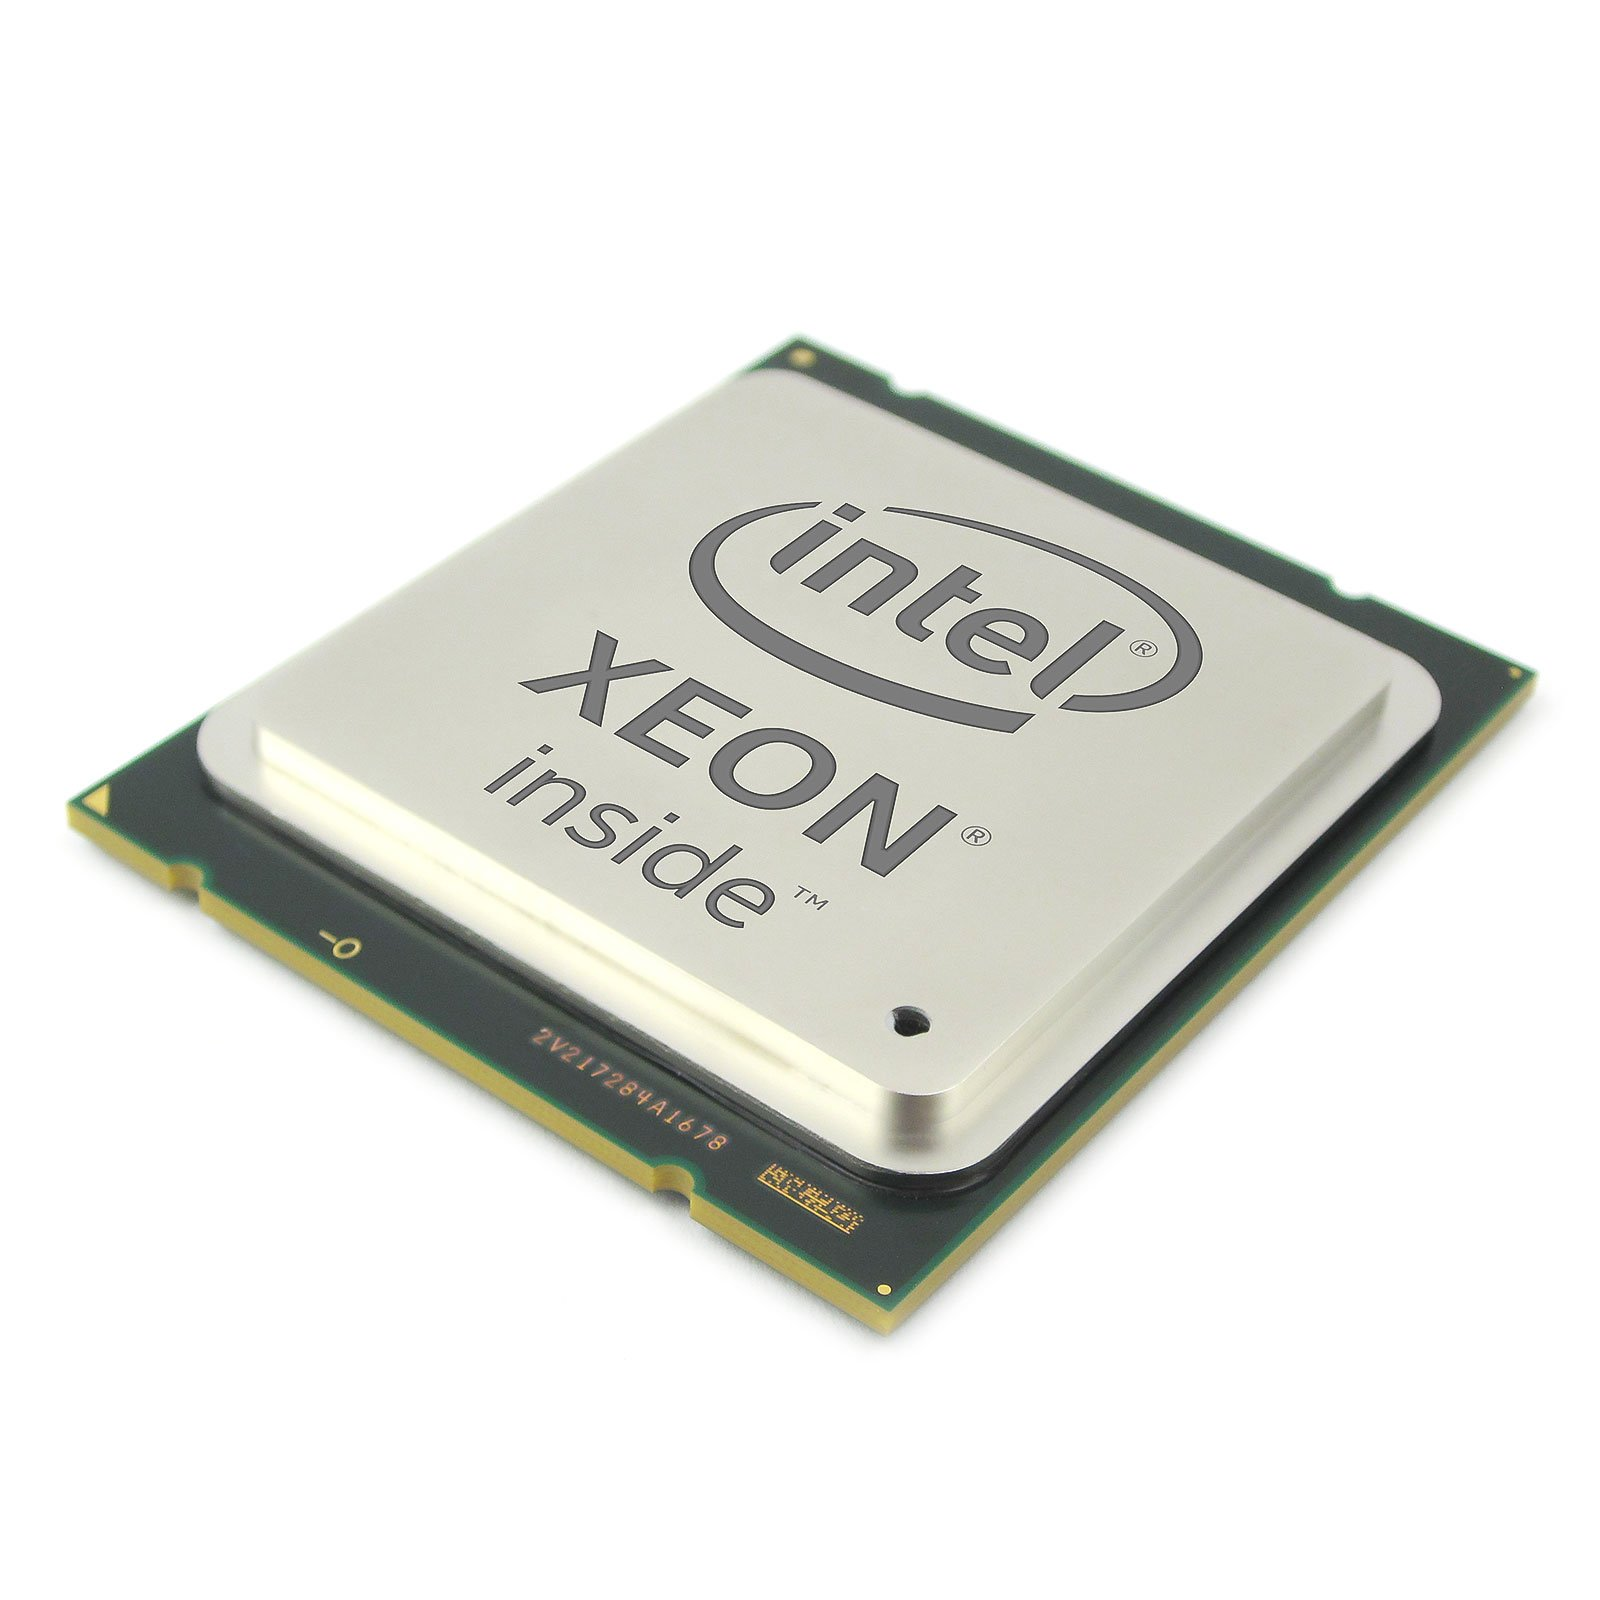 1.80Ghz E5.2603 V2 Quad Core QC Intel Xeon Processor SR1AY (Certified Refurbished) by TechMikeNY